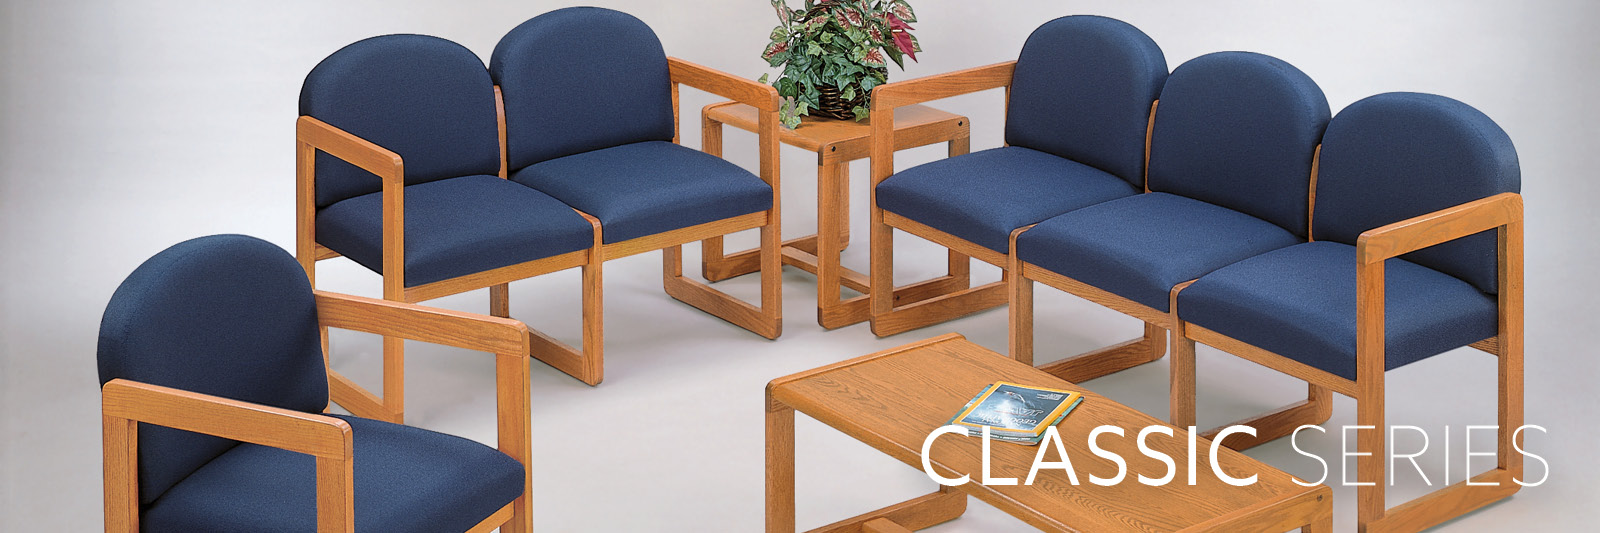 Classic Table Office Lesro Classic Series Shop The Classic Reception Furniture Set